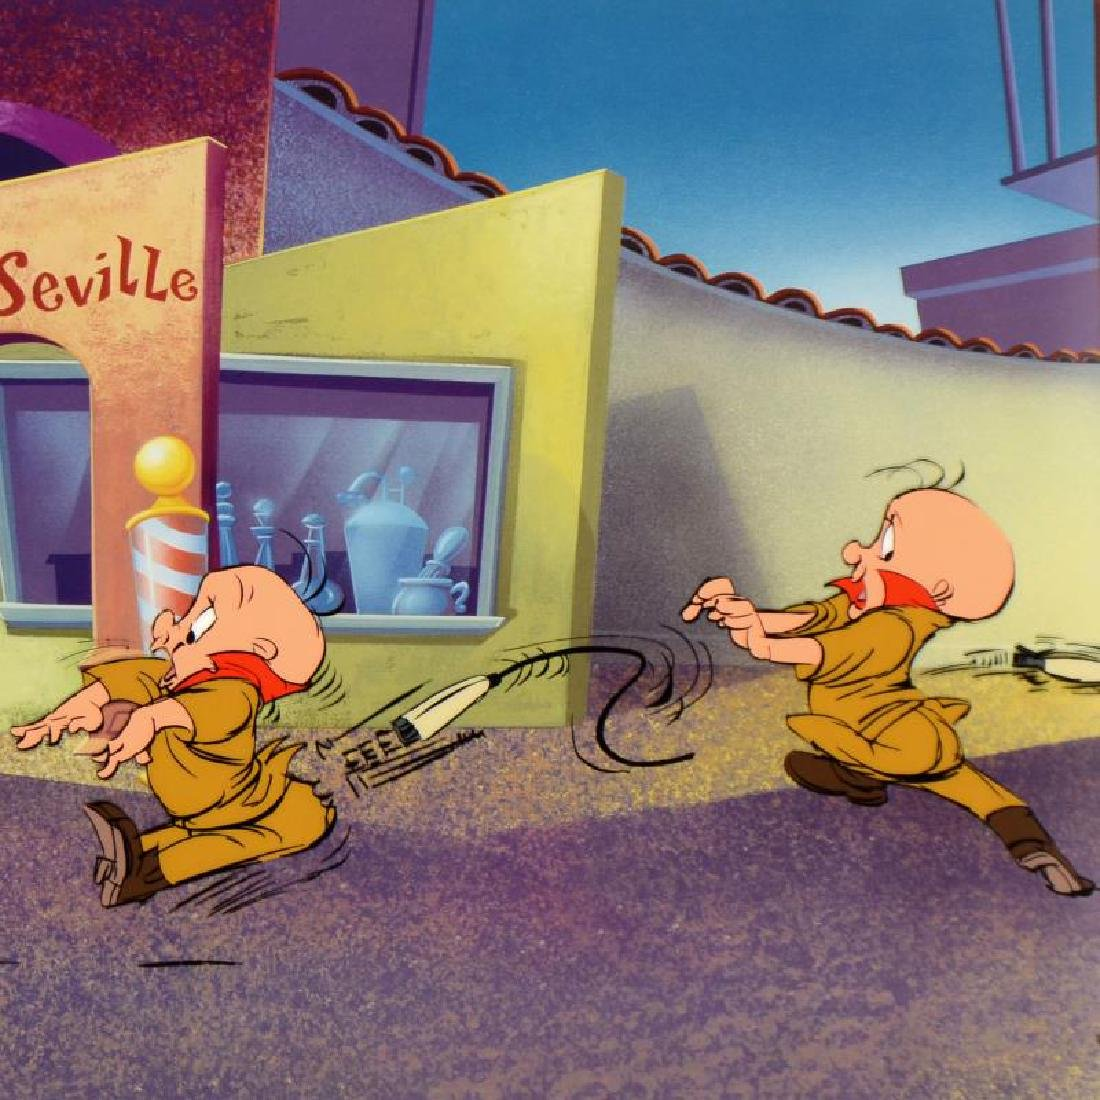 Rabbit Of Seville by Chuck Jones (1912-2002) - 2